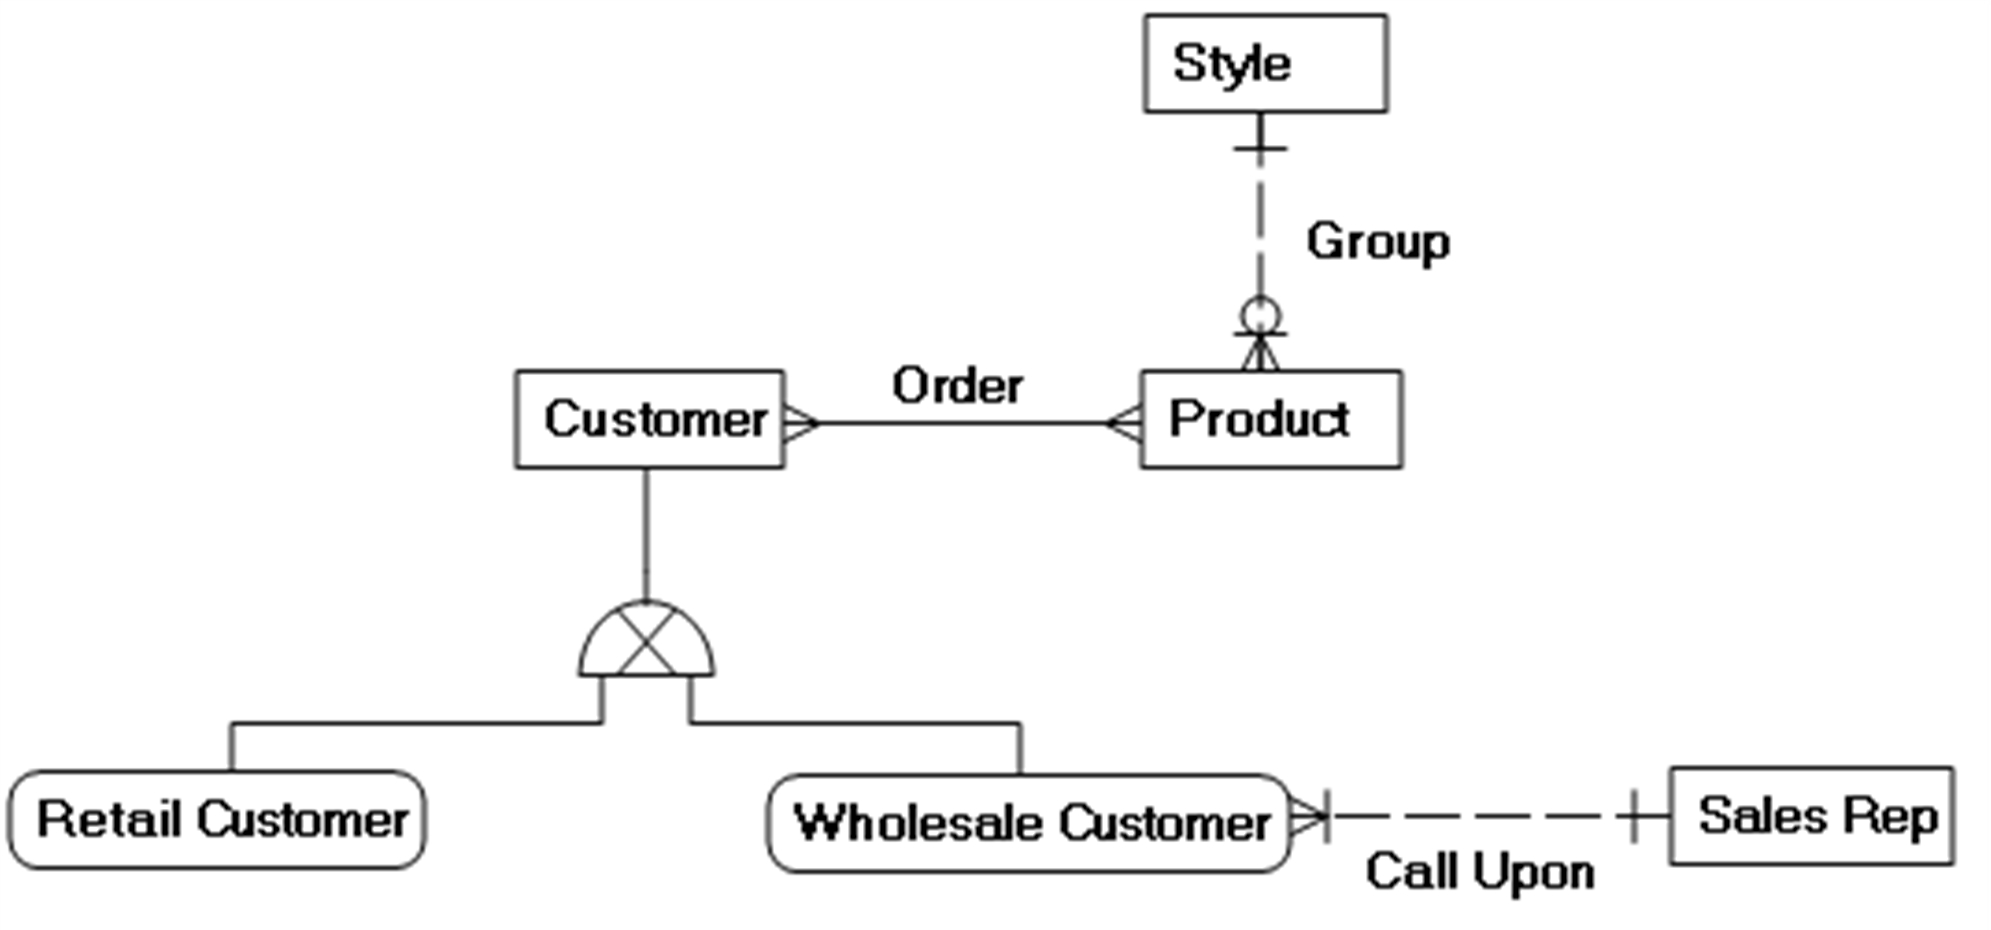 Creating A Logical Data Model - Data Modeling Made Simple with regard to Logical Data Model